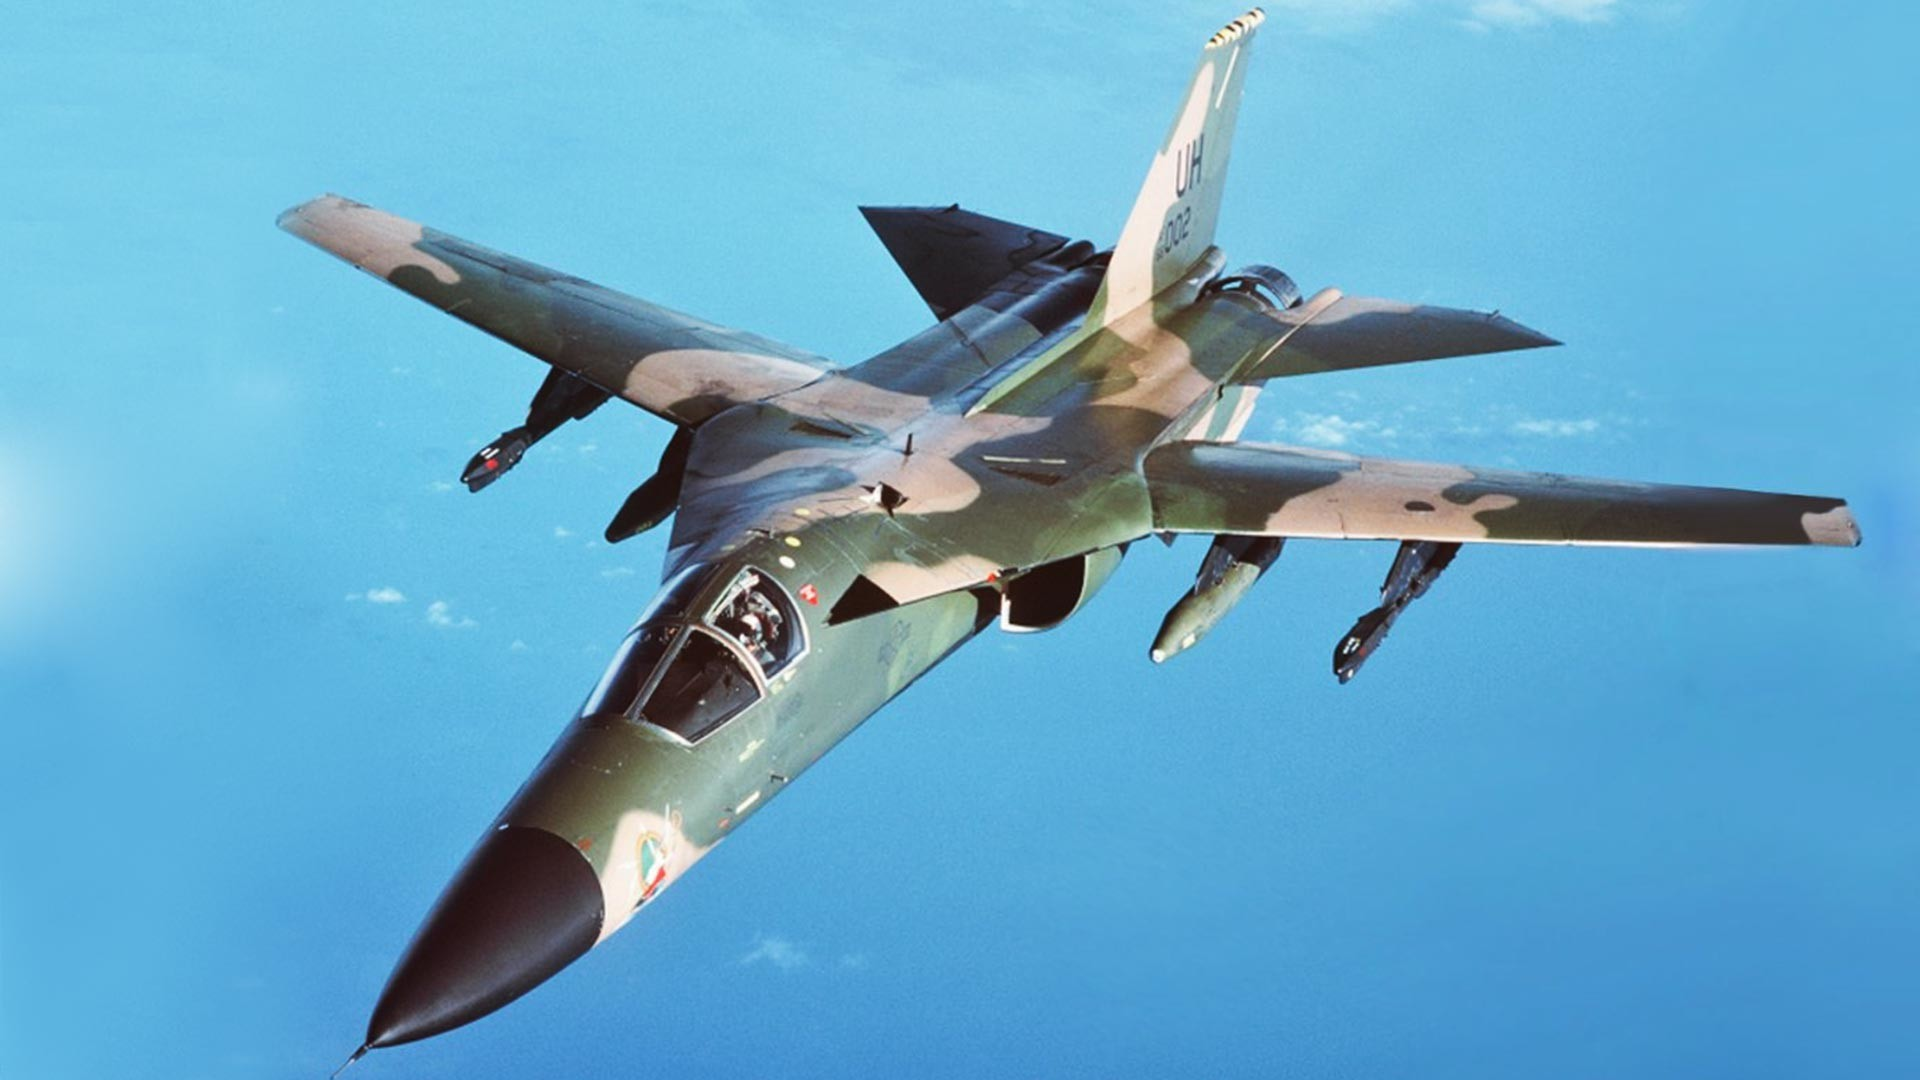 An air-to-air left front view of an F-111 aircraft during a refueling mission over the North Sea.